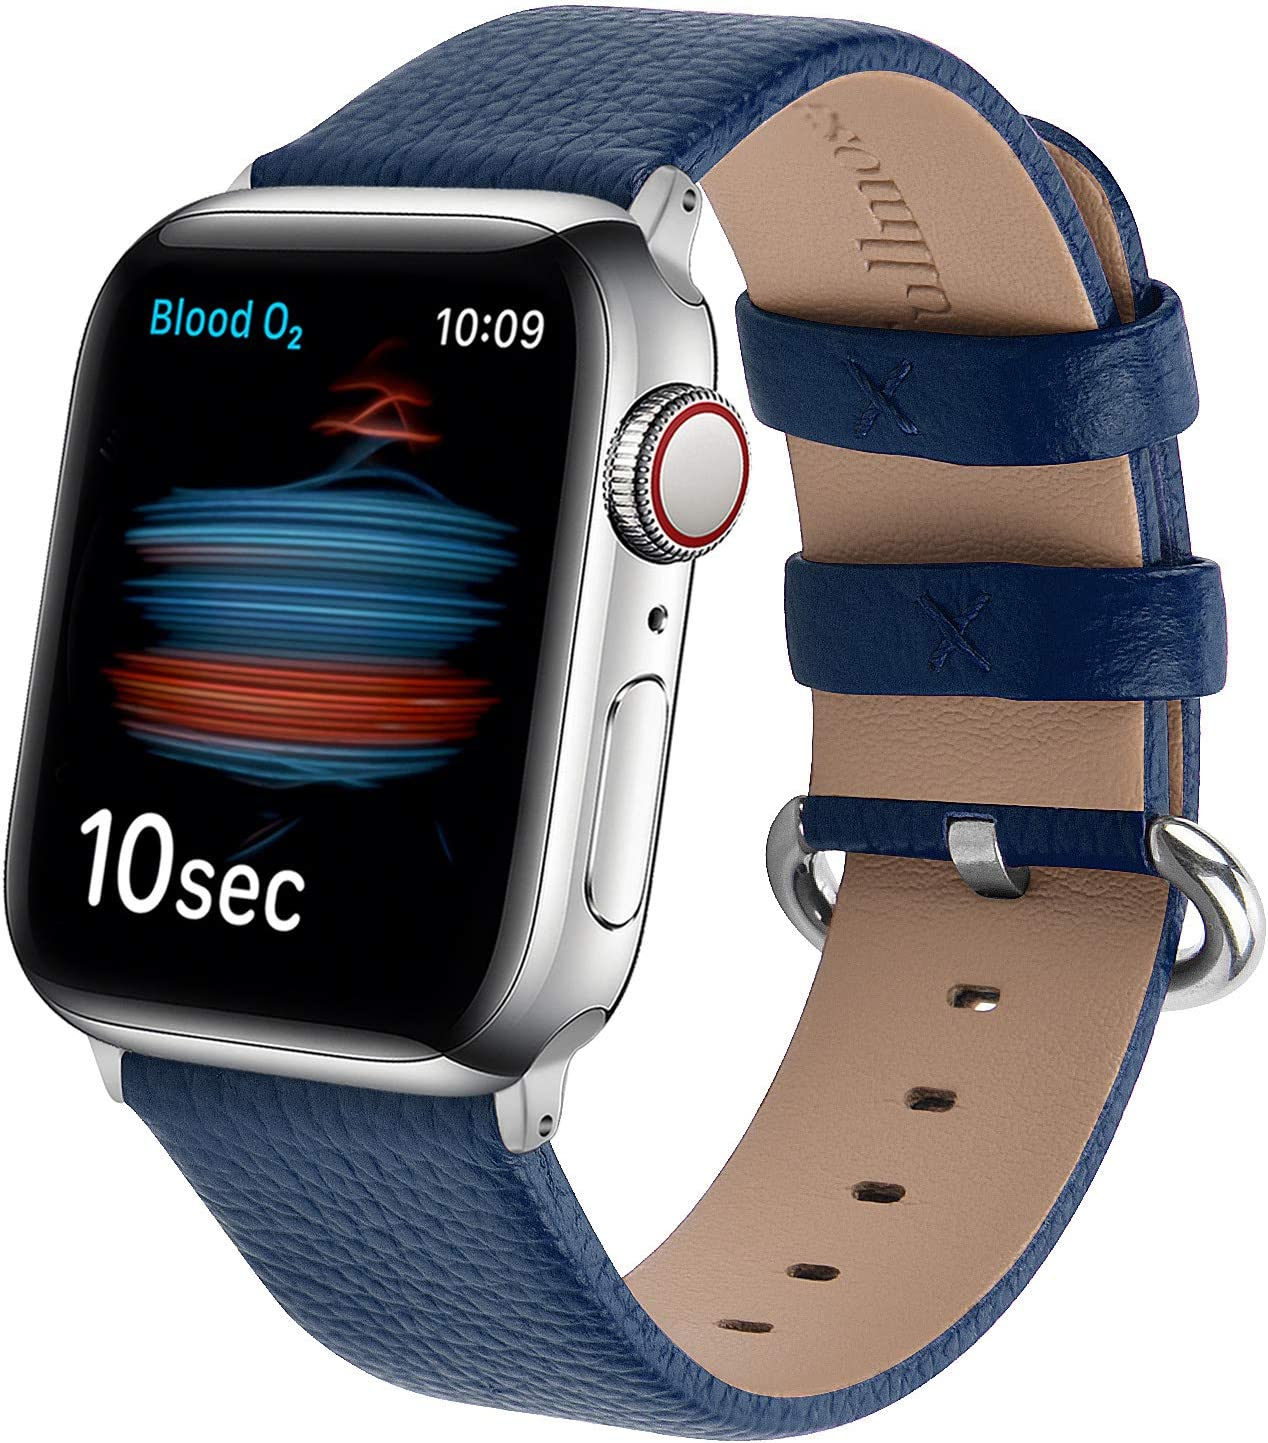 Fullmosa Watchbands Compatible for Apple Watch Band Series 6 SE Series 5 Series 4 Series 3 Series 2 Series 1, iWatch Strap Compatible with Apple Watch Blue Leather Band 38mm 40mm 42mm 44mm, Dark Blue